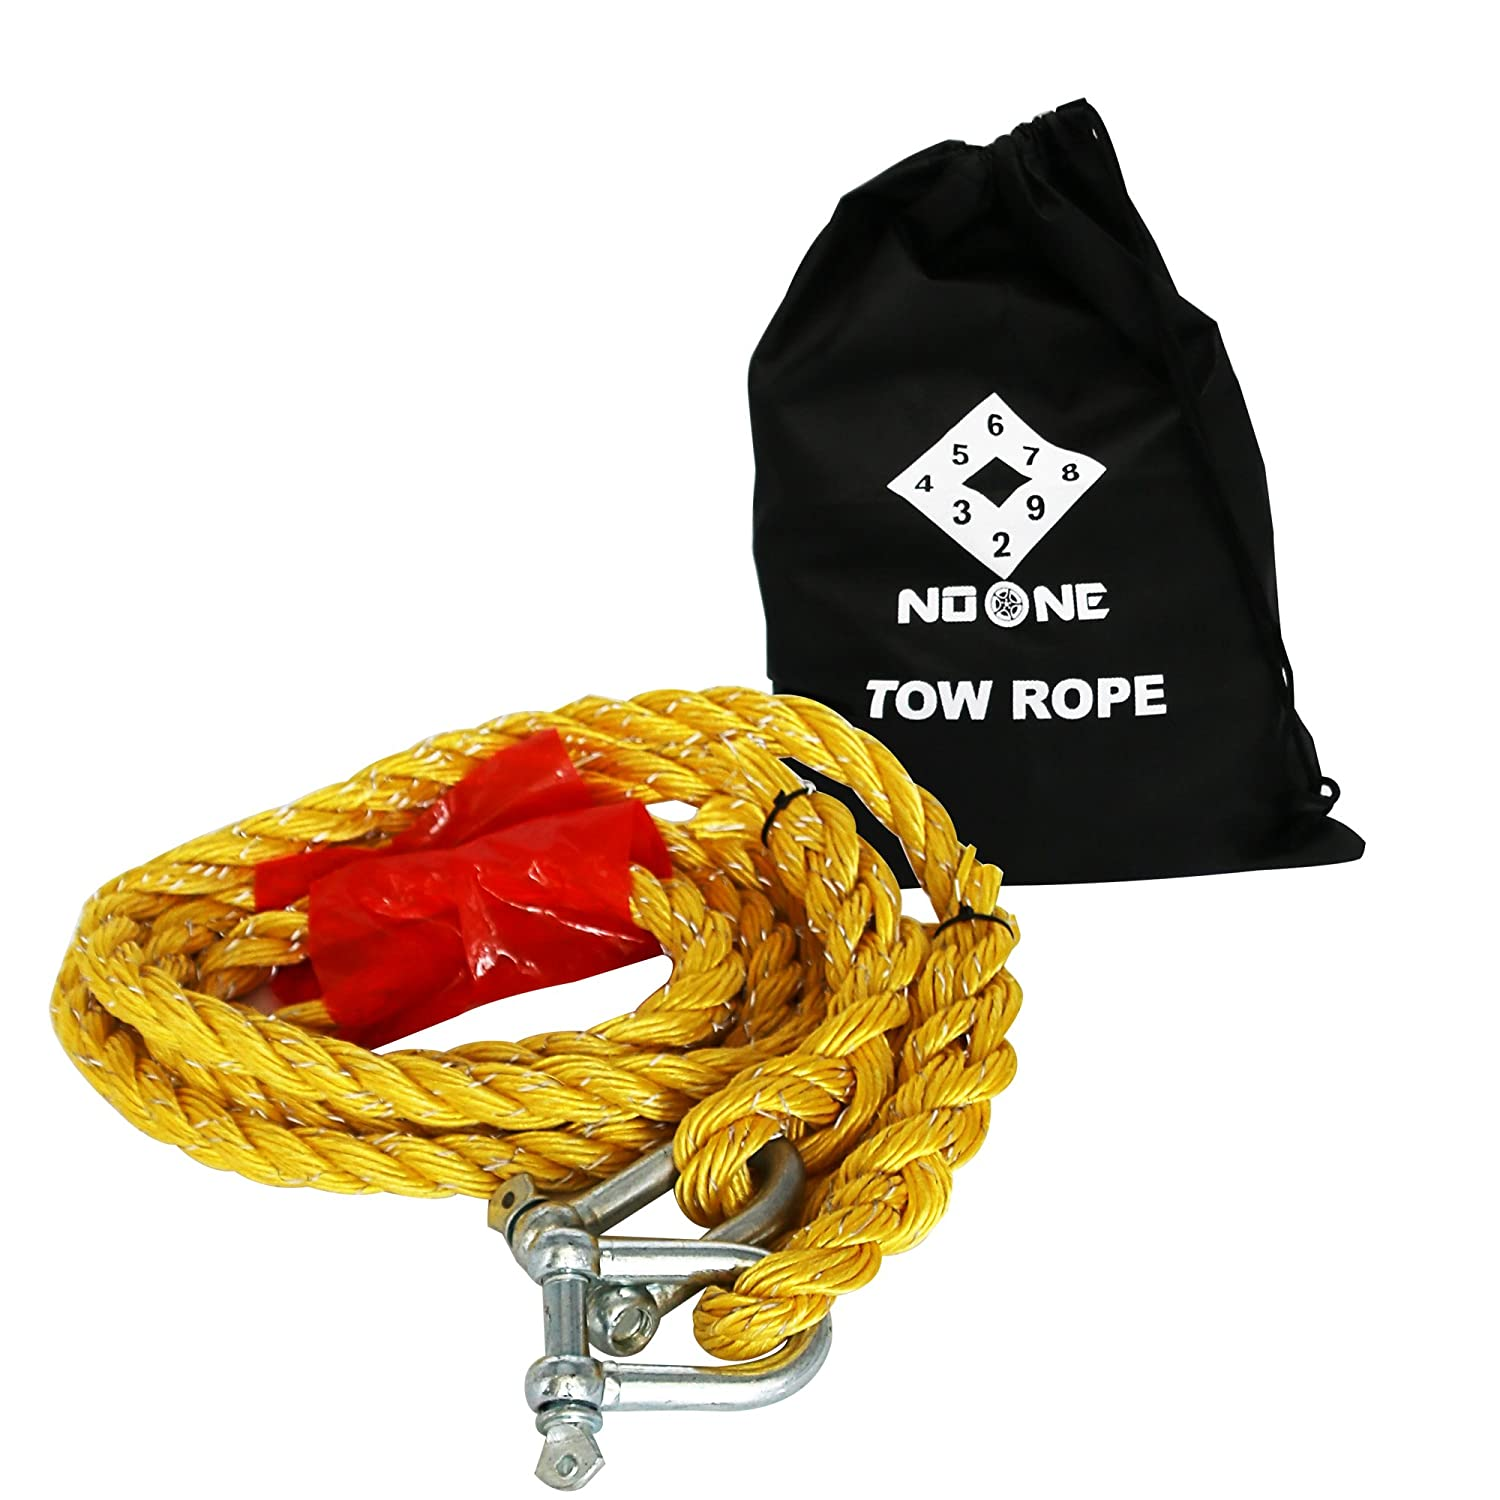 NoOne Car Tow Rope for SUV Pickup in Length 13 Feets and Maximum Affordable Pull 2.8 Tonnes with Free Storage Bag (Red)